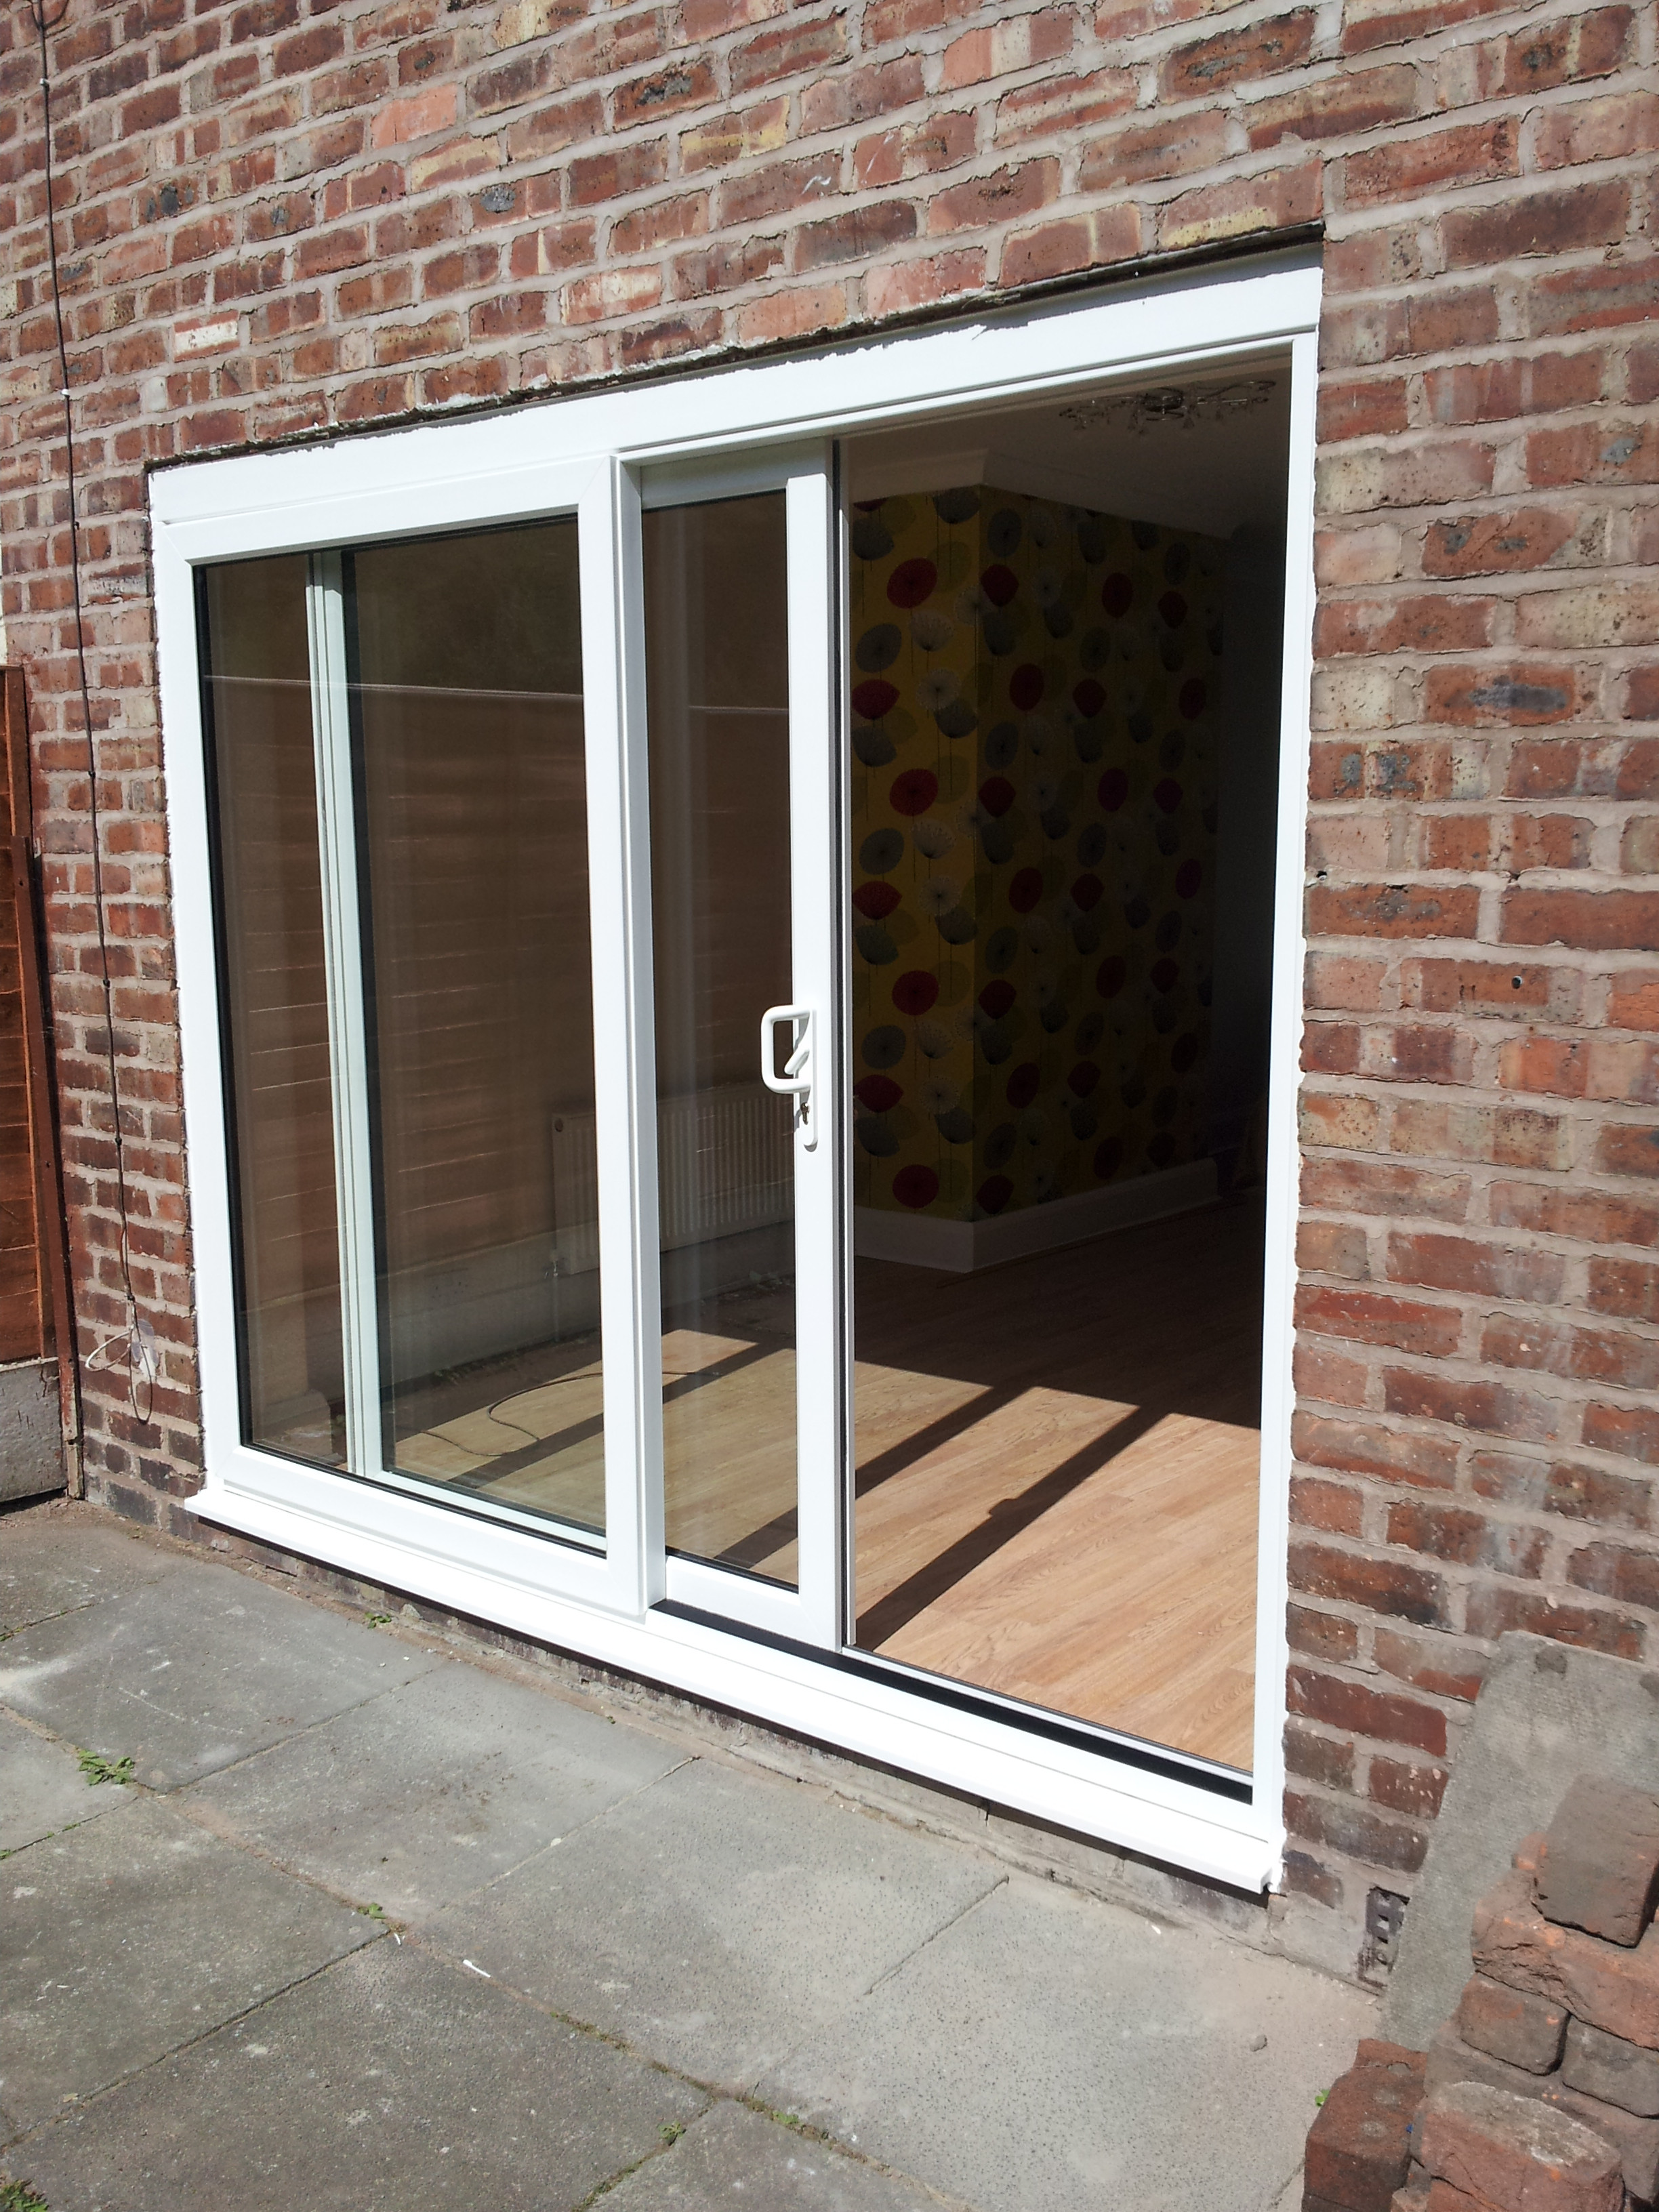 Best ideas about Lowes Sliding Patio Doors . Save or Pin Impressive Sliding Patio Door Screen Super Lowes Now.